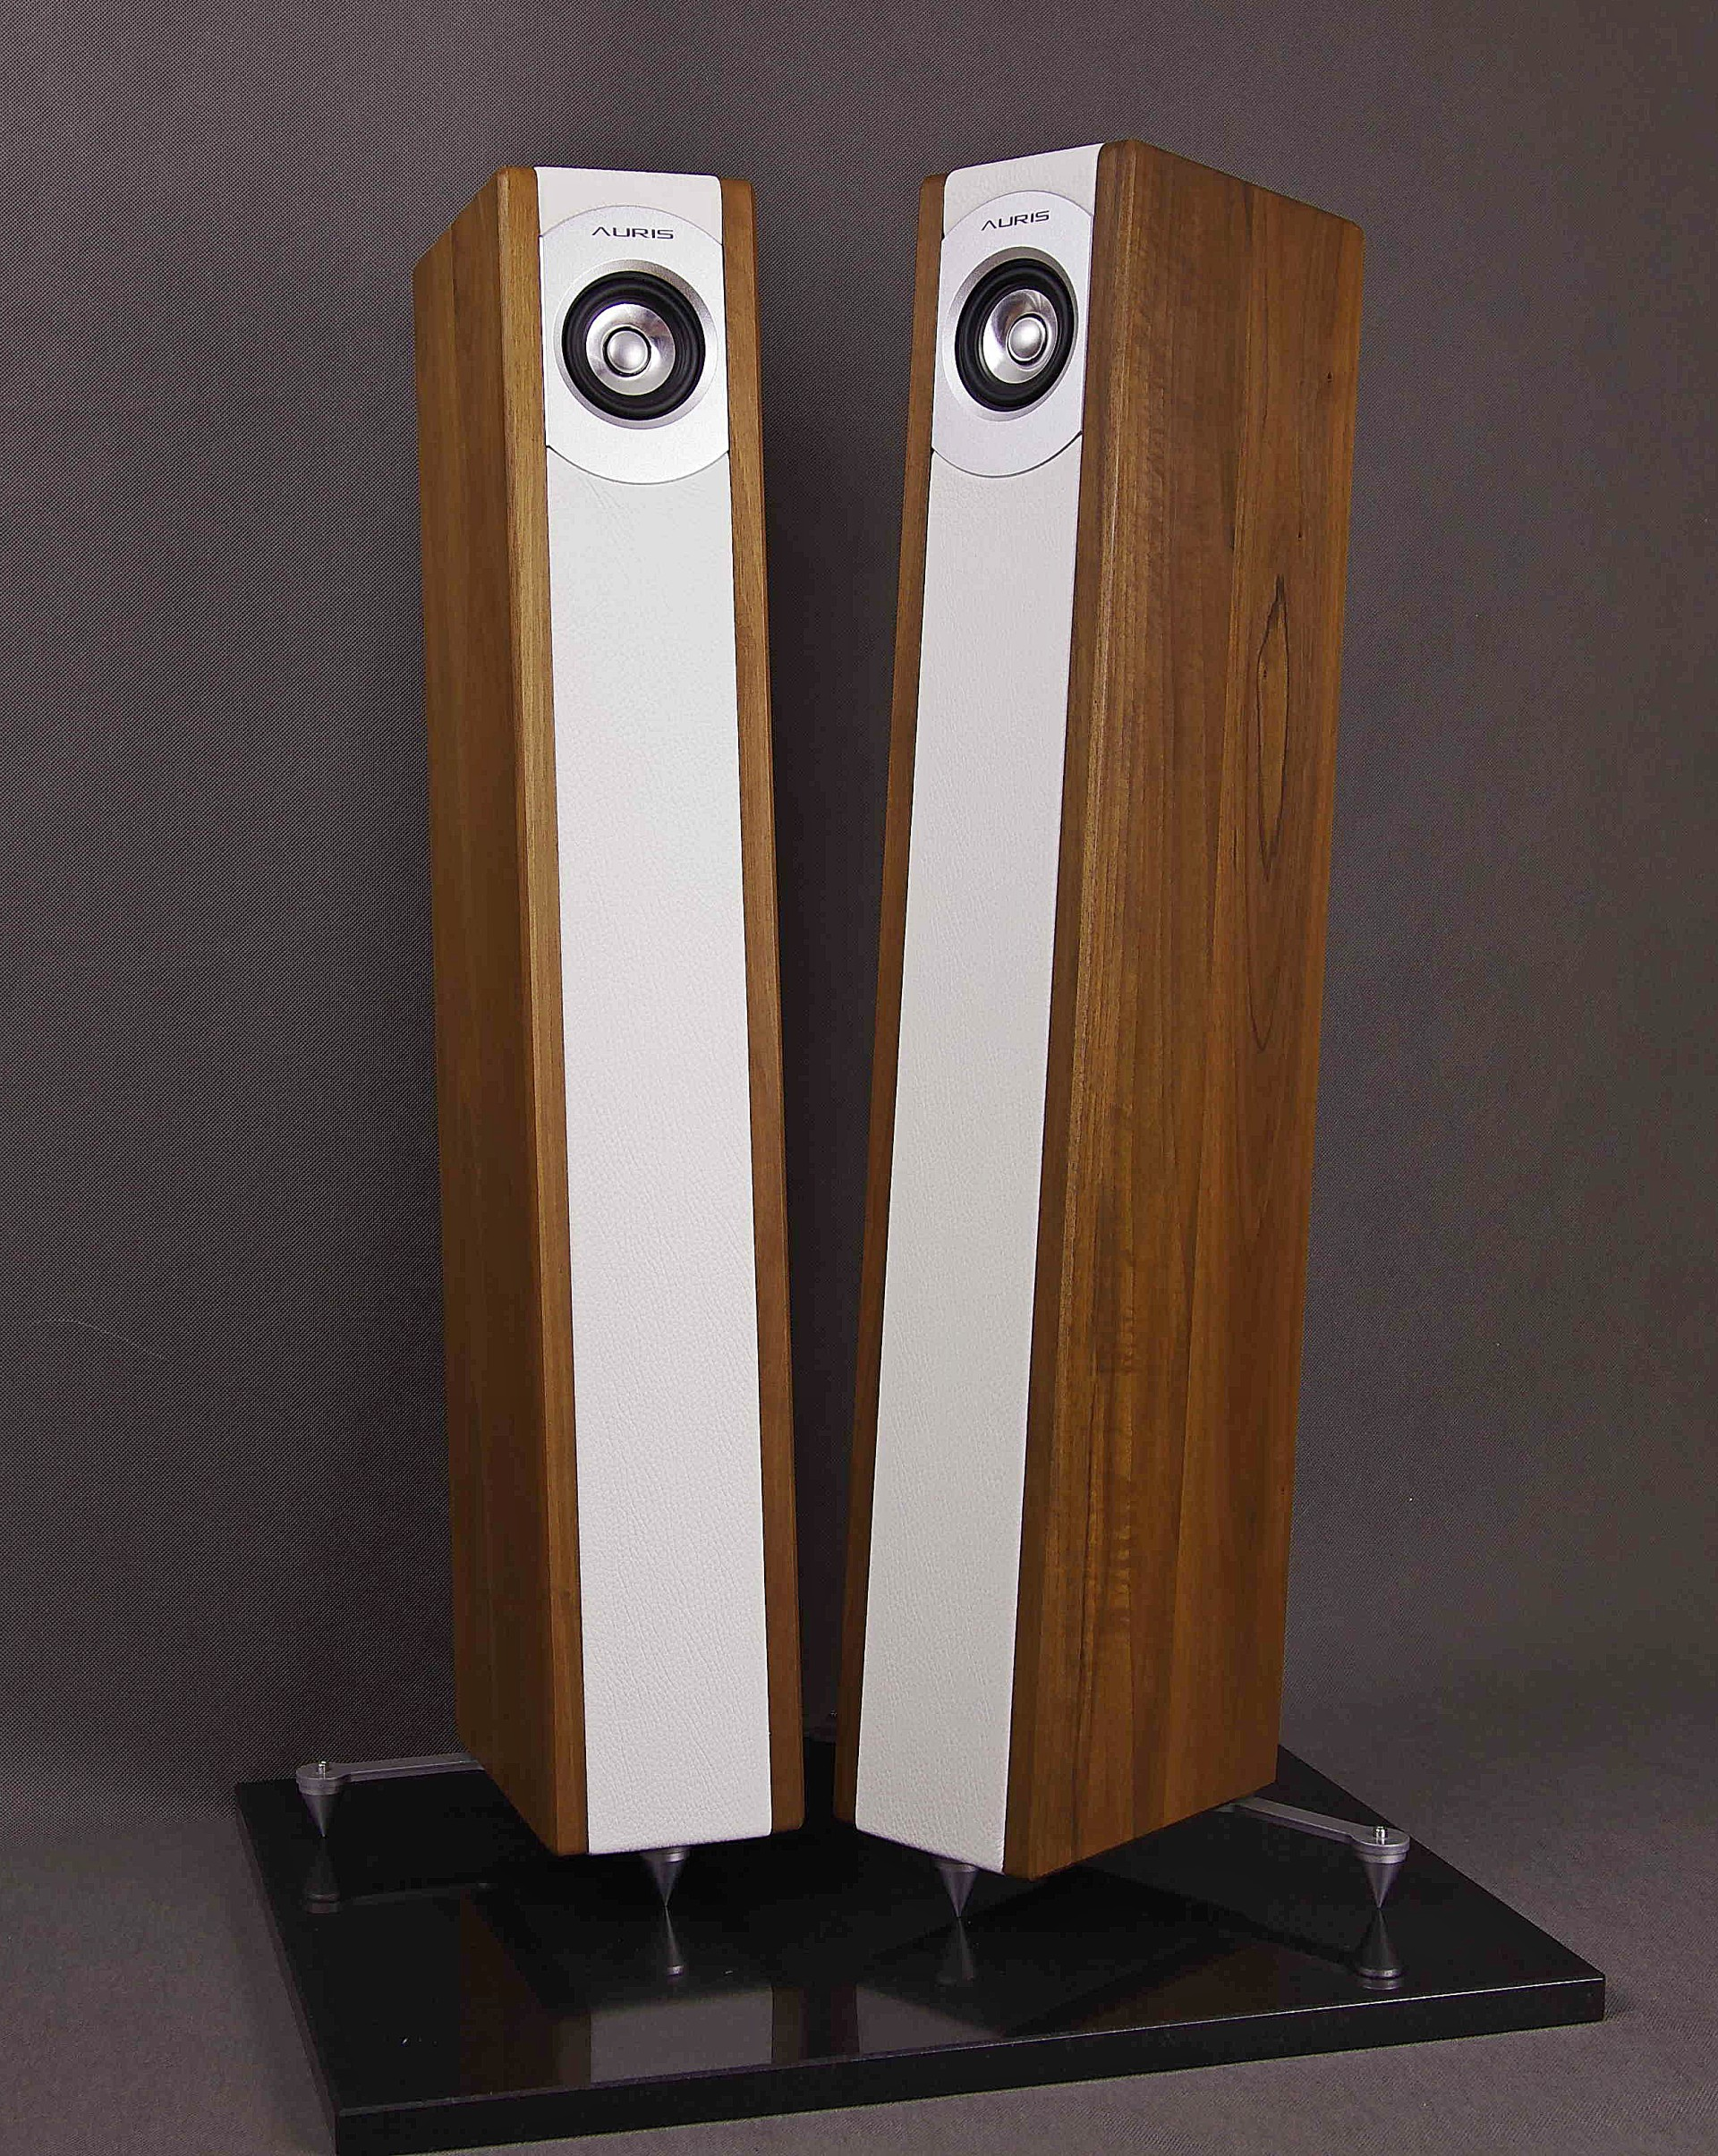 Auris Audio Poison 3 Hifi Knights Speakers Quite The Opposite I Think Balance Between Pros And Cons Of These Is Definitely Positive Its Hard Not To Like Beautiful